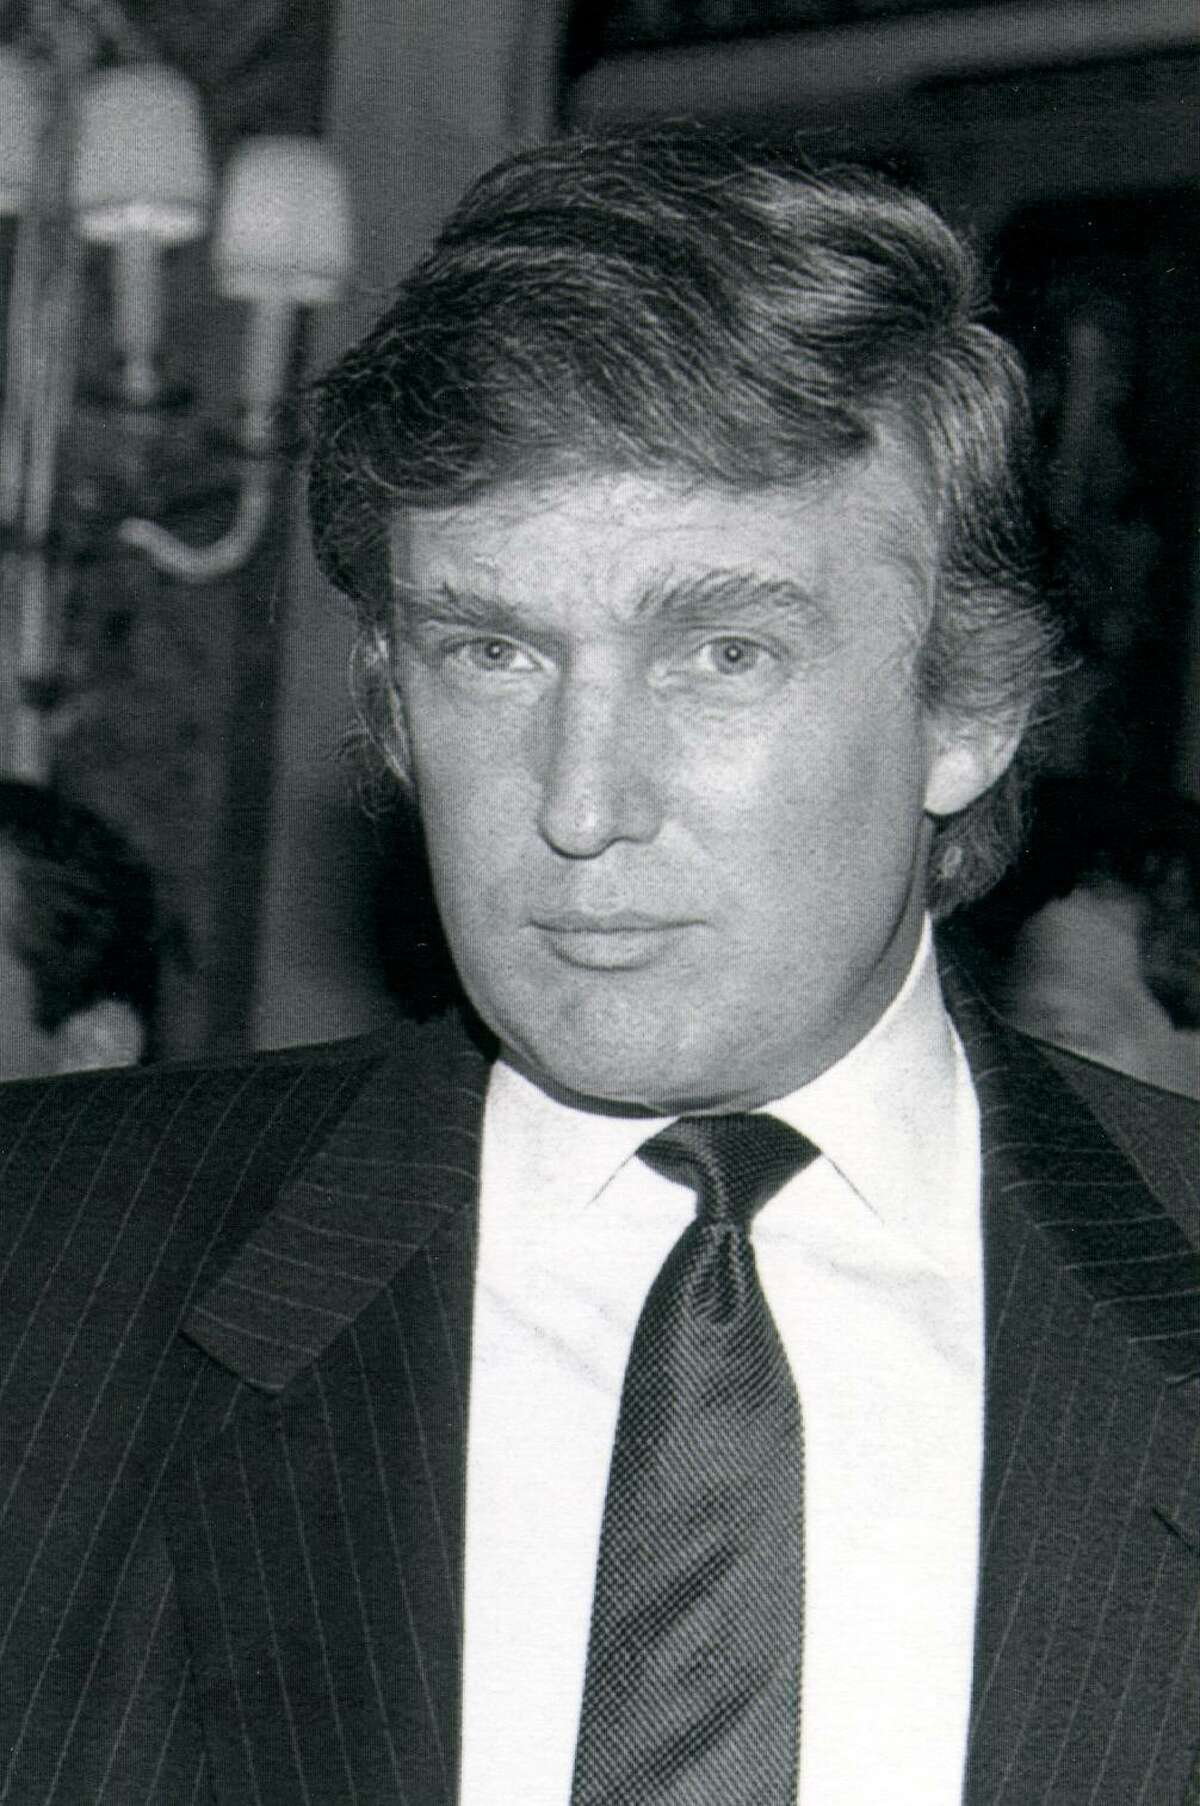 Real estate mogul Donald Trump on April 9, 1991 file photo. Trump missed a payment due on junk bonds used to finance one of his Atlantic City, N.J., resorts on June 15, 1990.